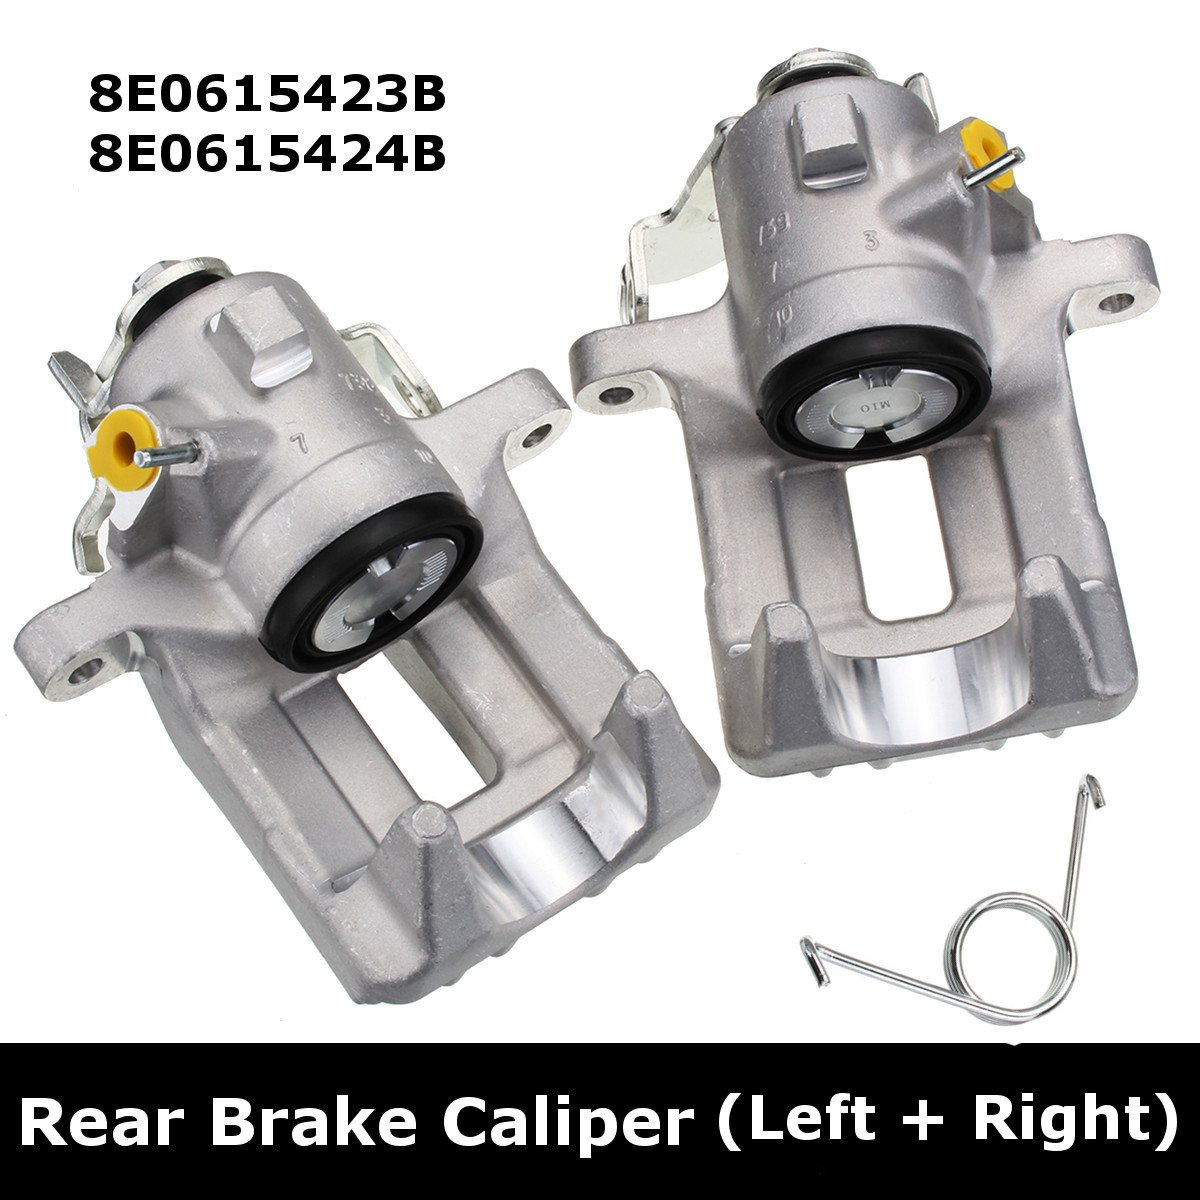 Rear Left+Right Brake Caliper 8E0615423B 8E0615424B For VW Passat 3B5 For Audi A4 A6 engine fuel injector nozzle for 01 06 vw audi a4 a6 passat 0280156070